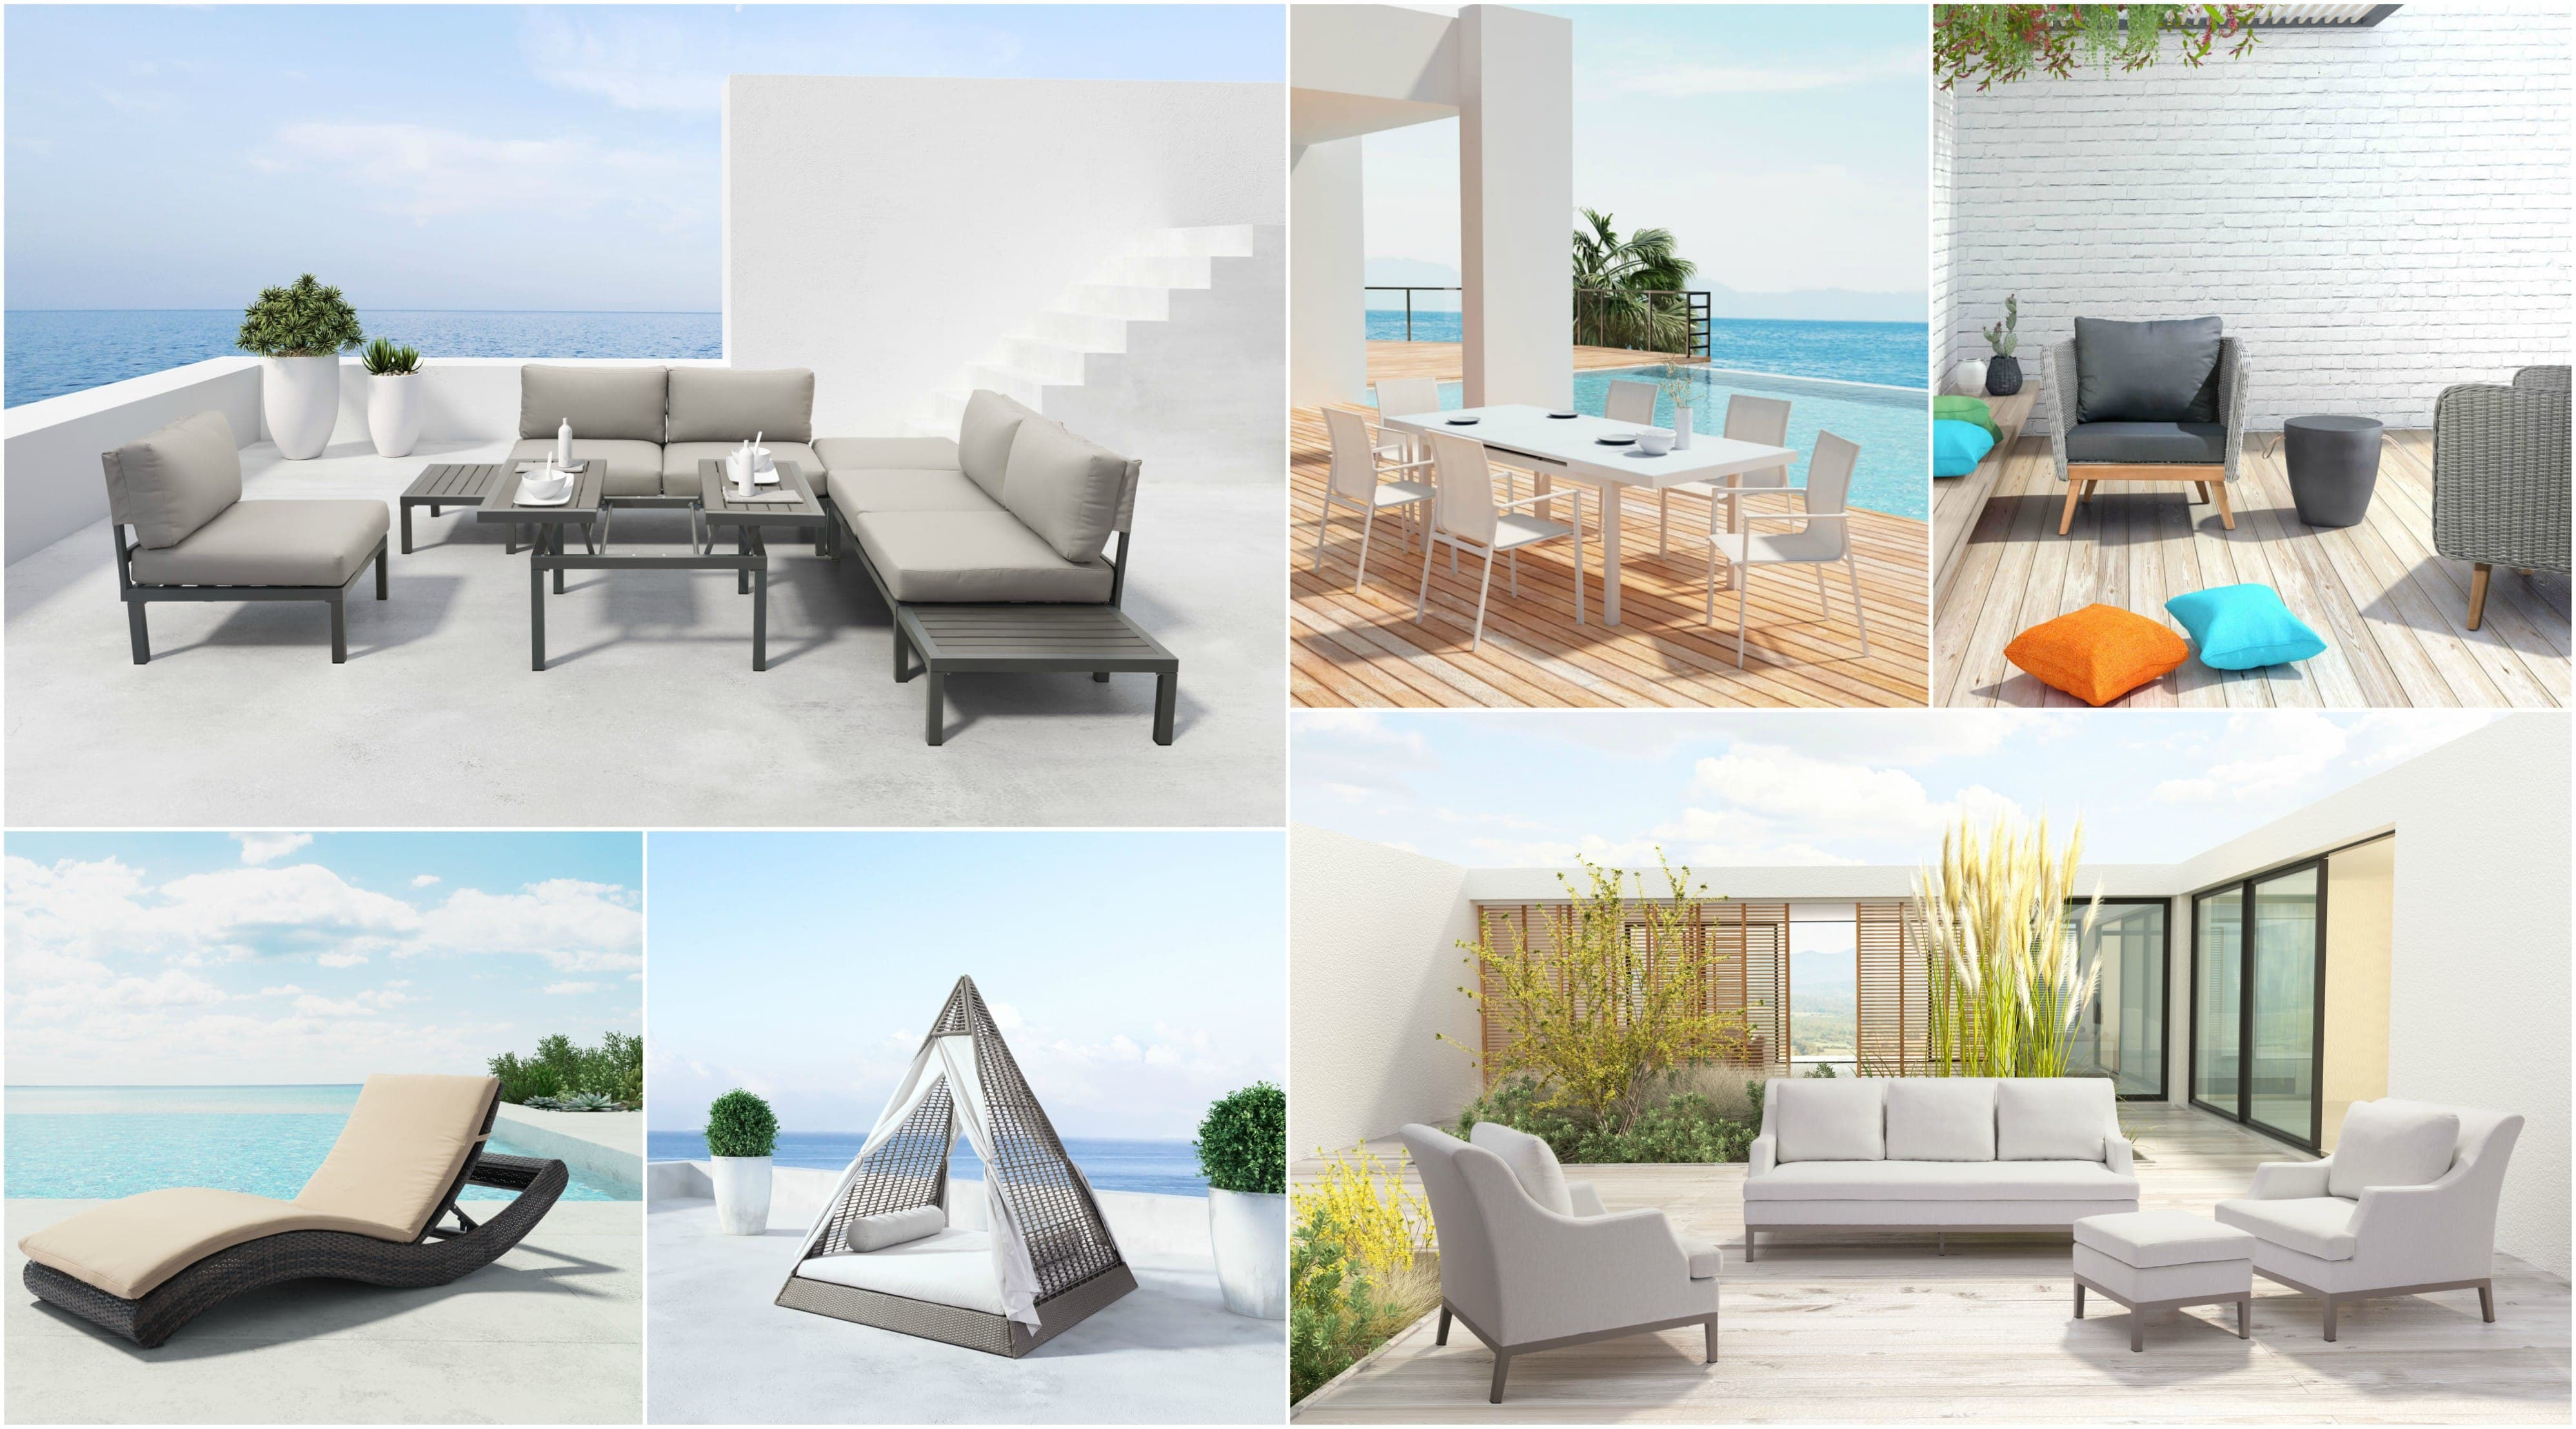 The perfect combination of garden furniture for this summer